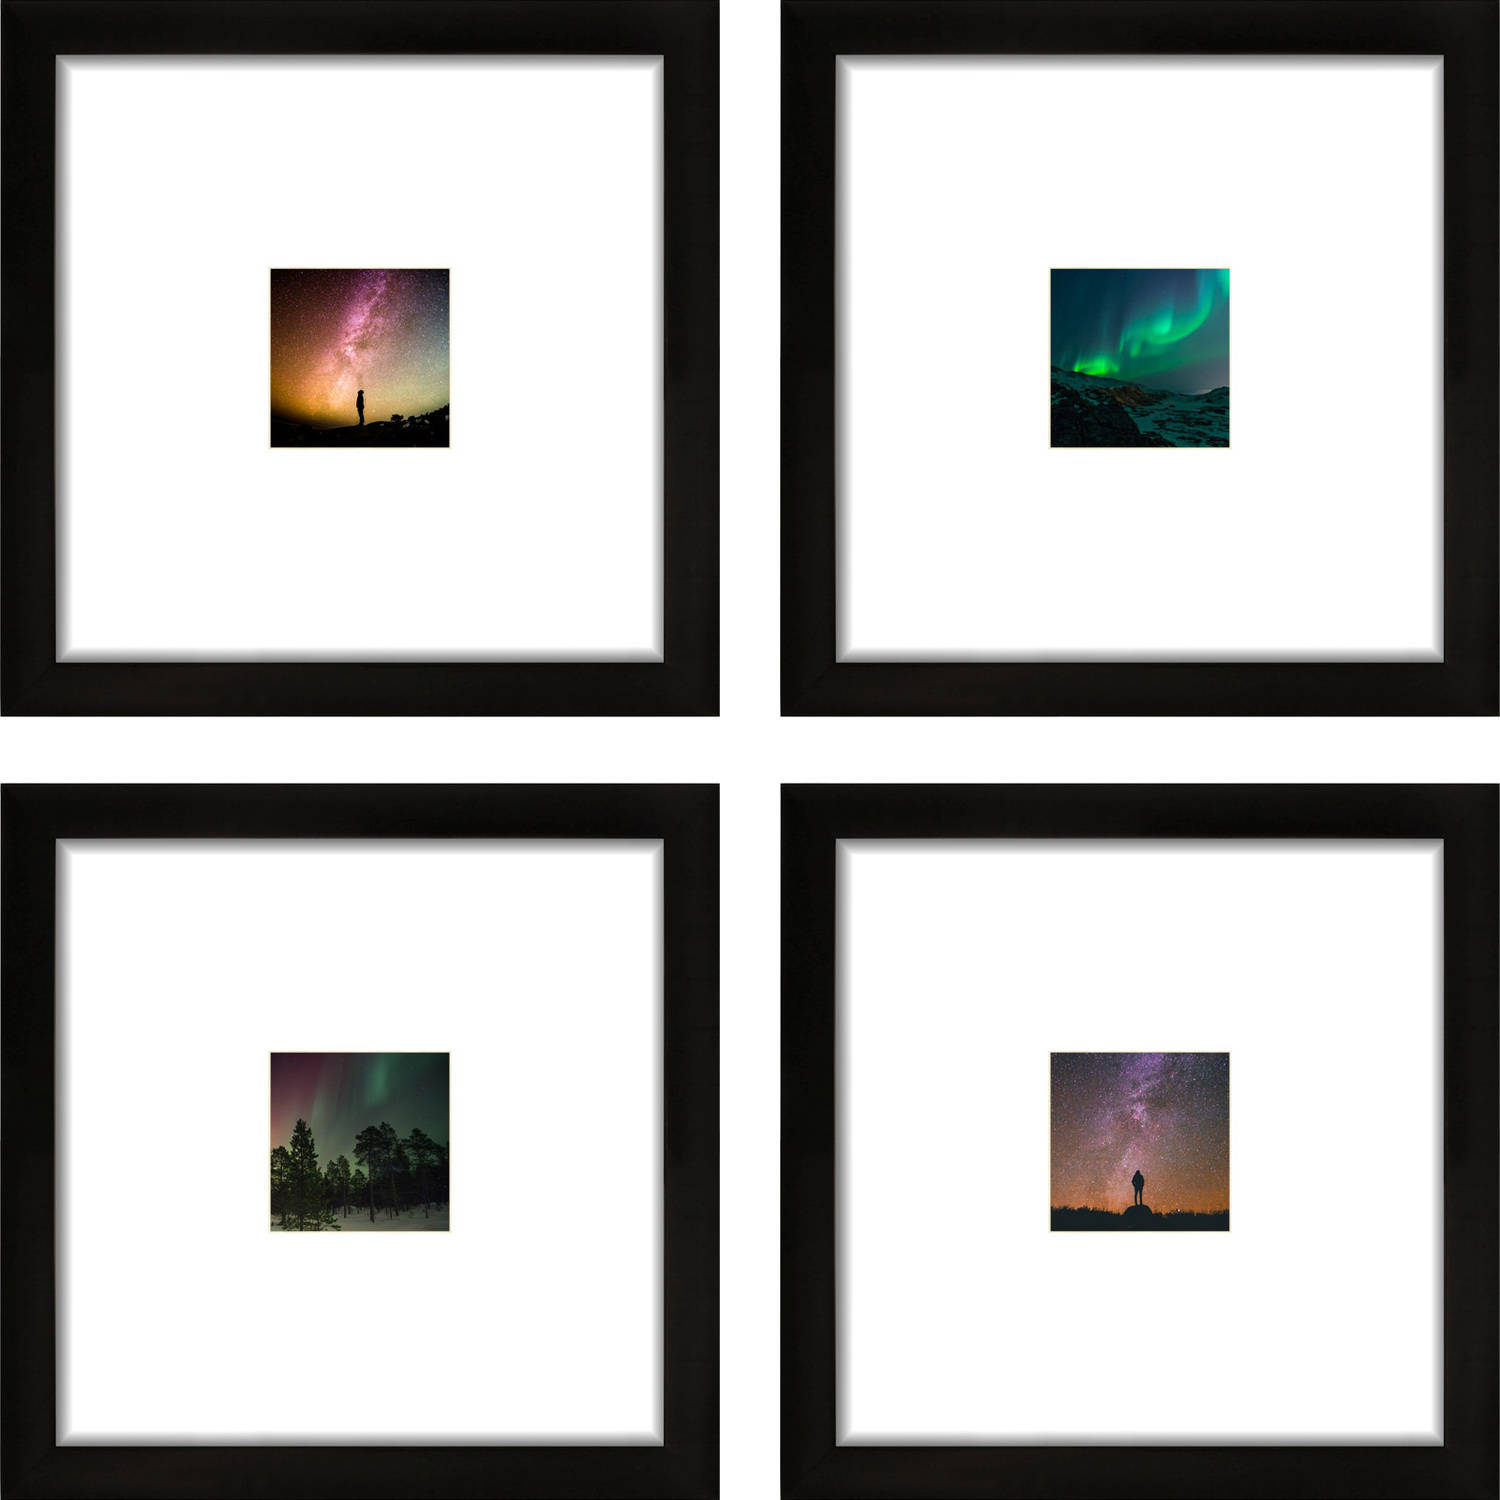 Craig Frames 12x12 Black Picture Frame Smartphone Collection